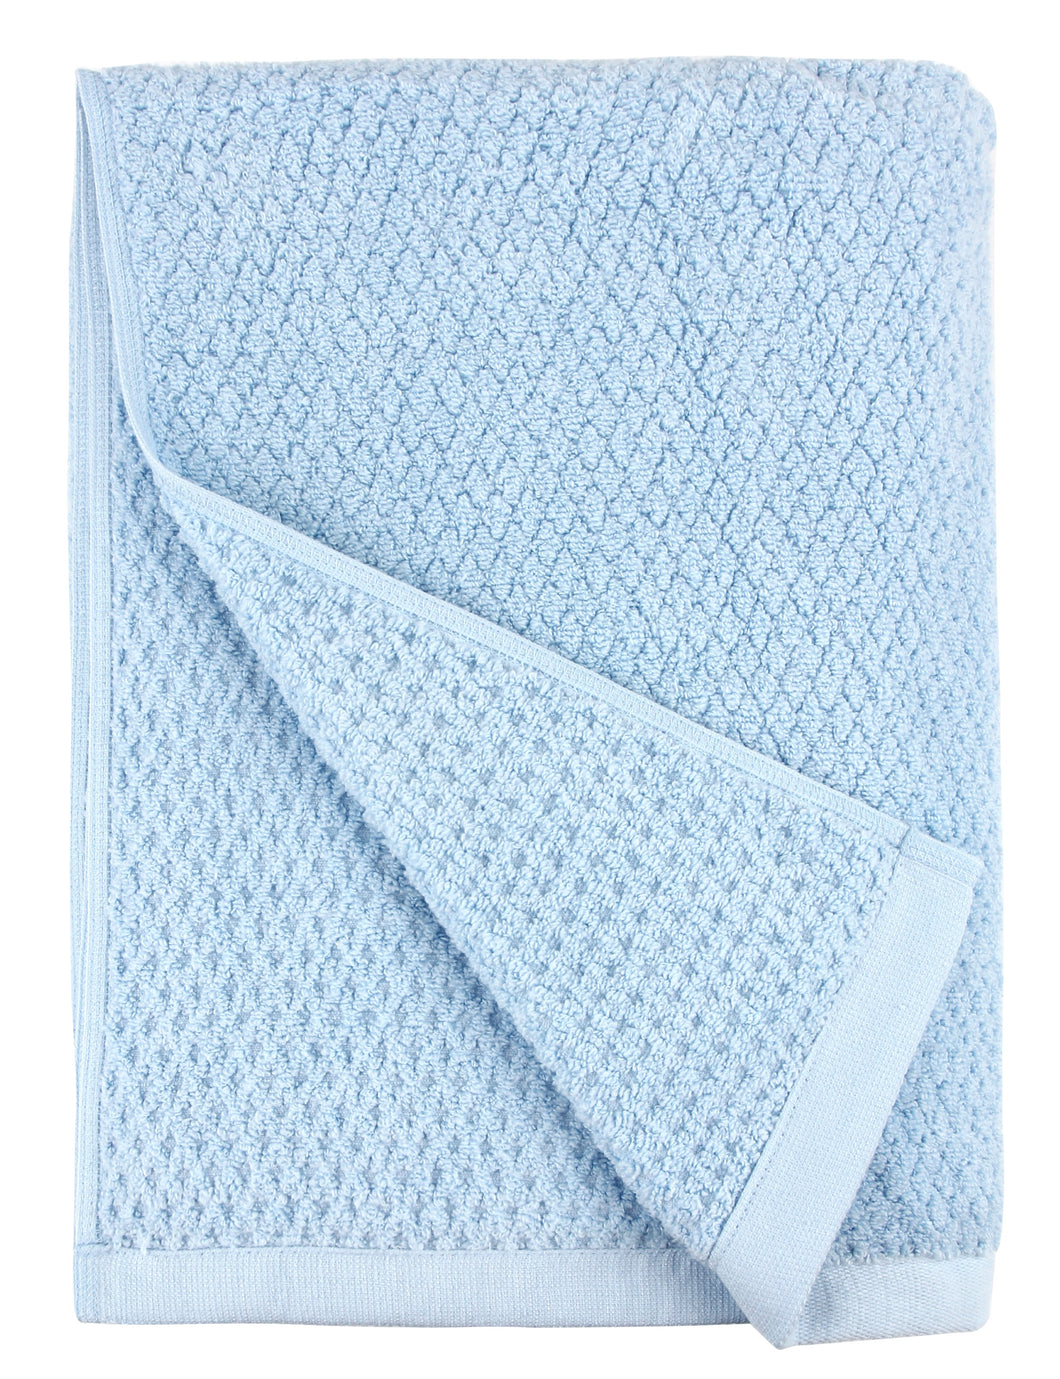 Diamond Jacquard Bath Towel - 1 Piece, Aquamarine